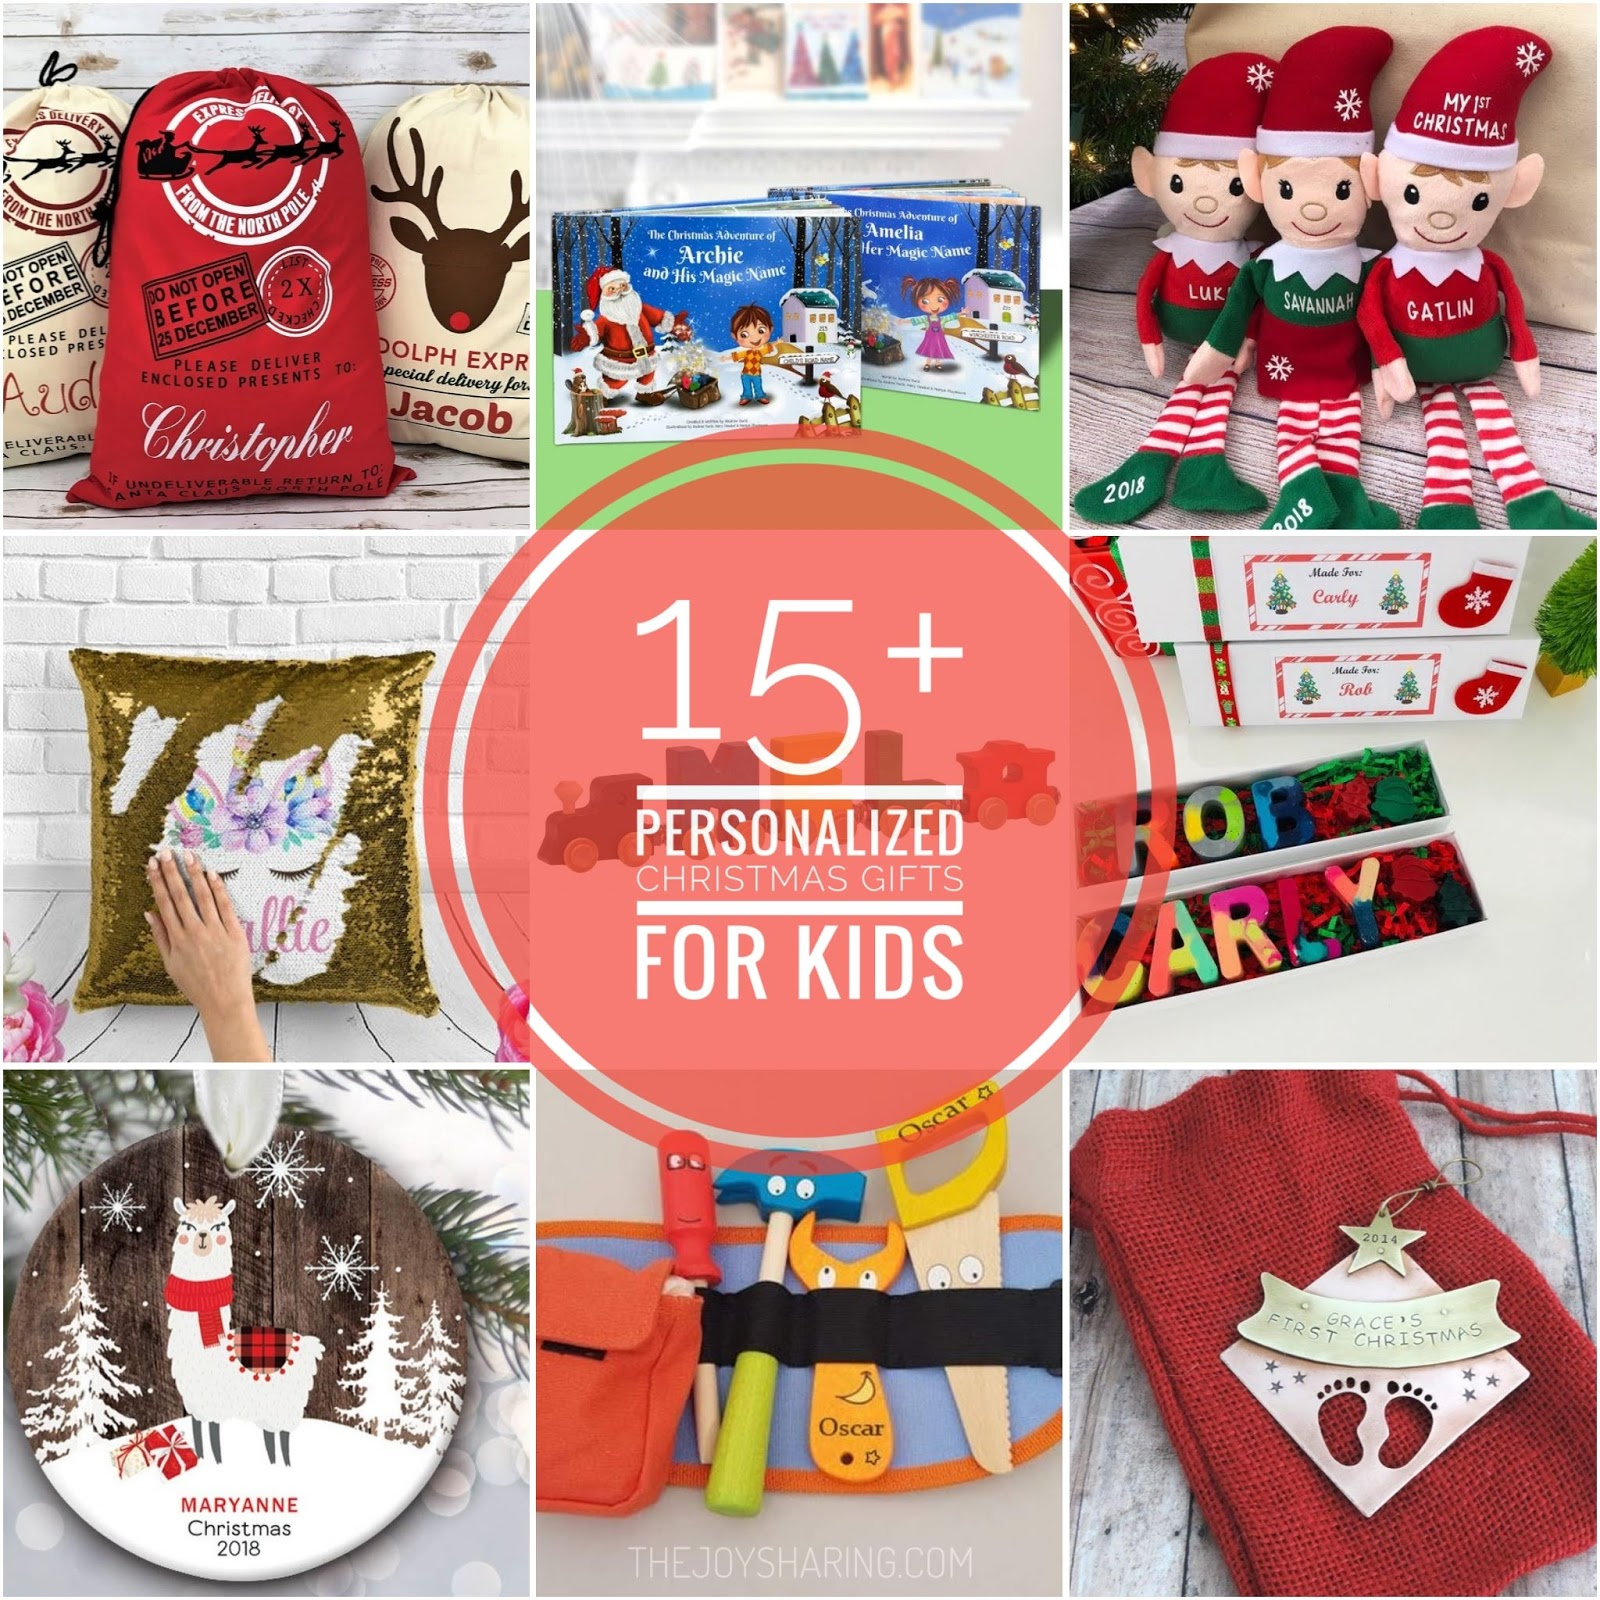 15 Personalized Christmas Gifts For Kids The Joy Of Sharing